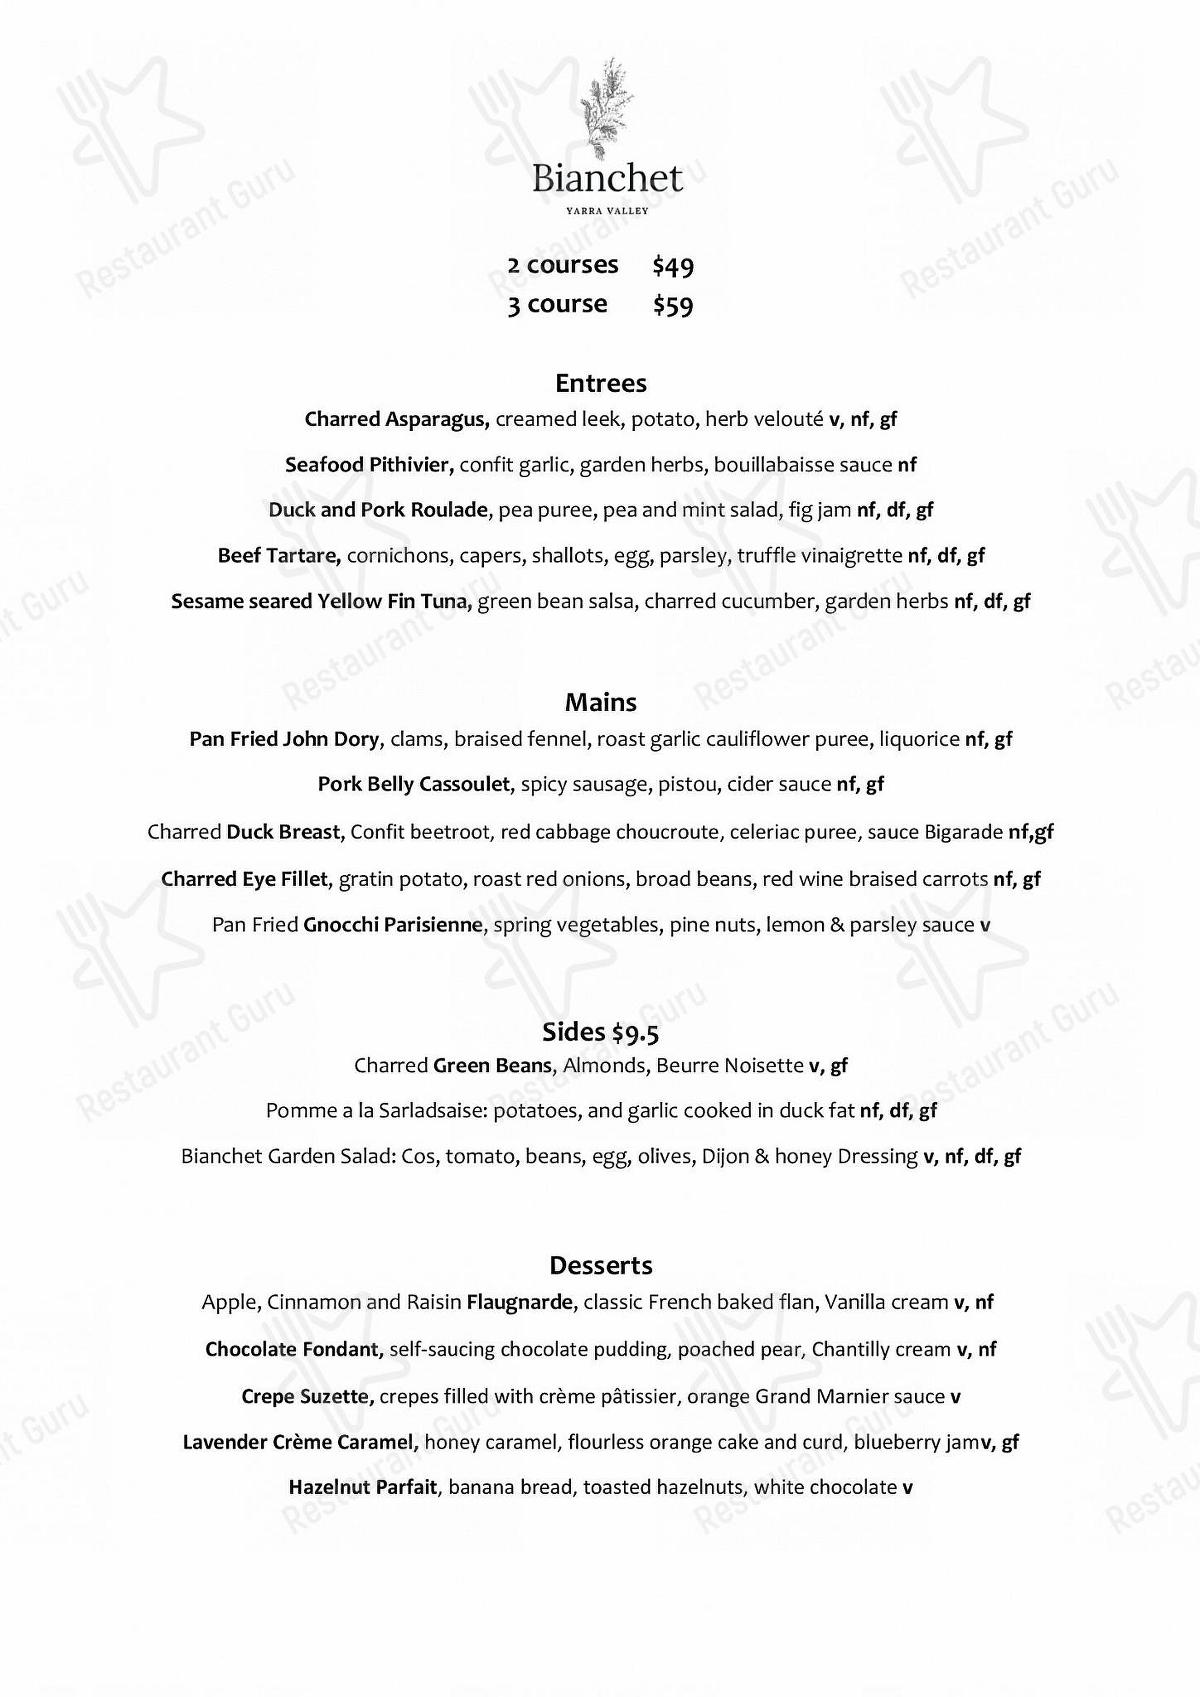 Bianchet Yarra Valley menu - dishes and beverages